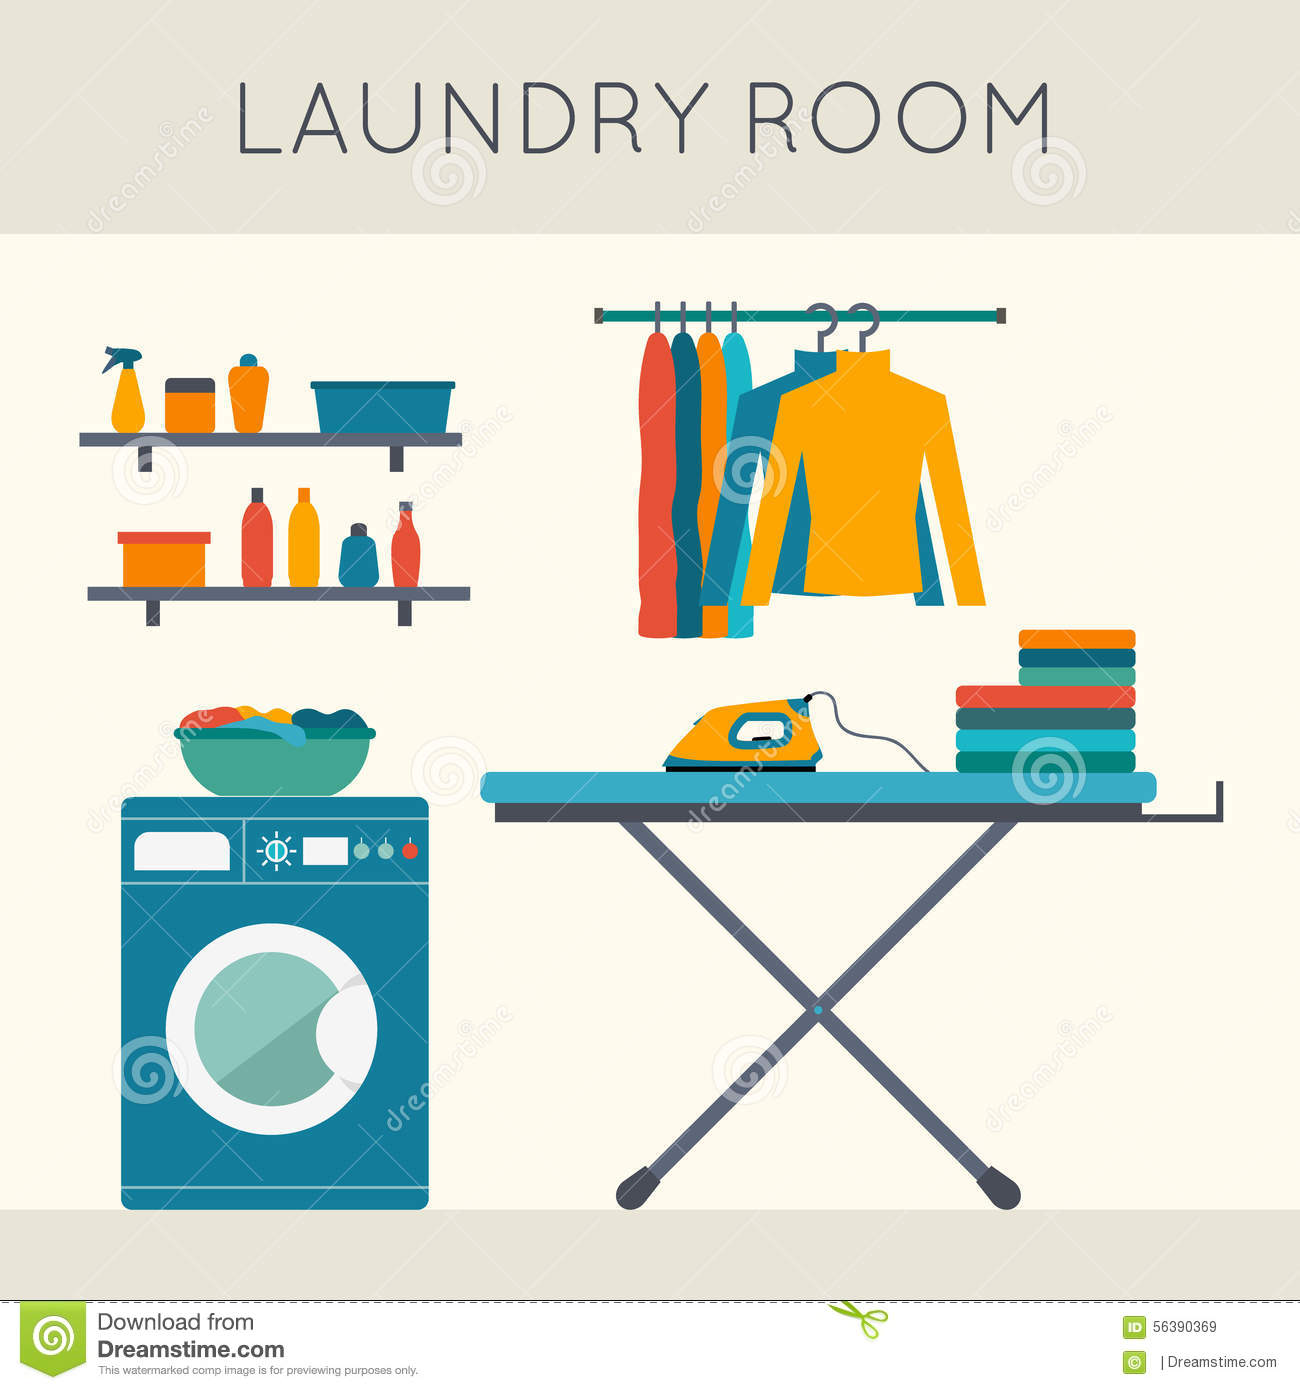 Laundry Room Clipart Free.